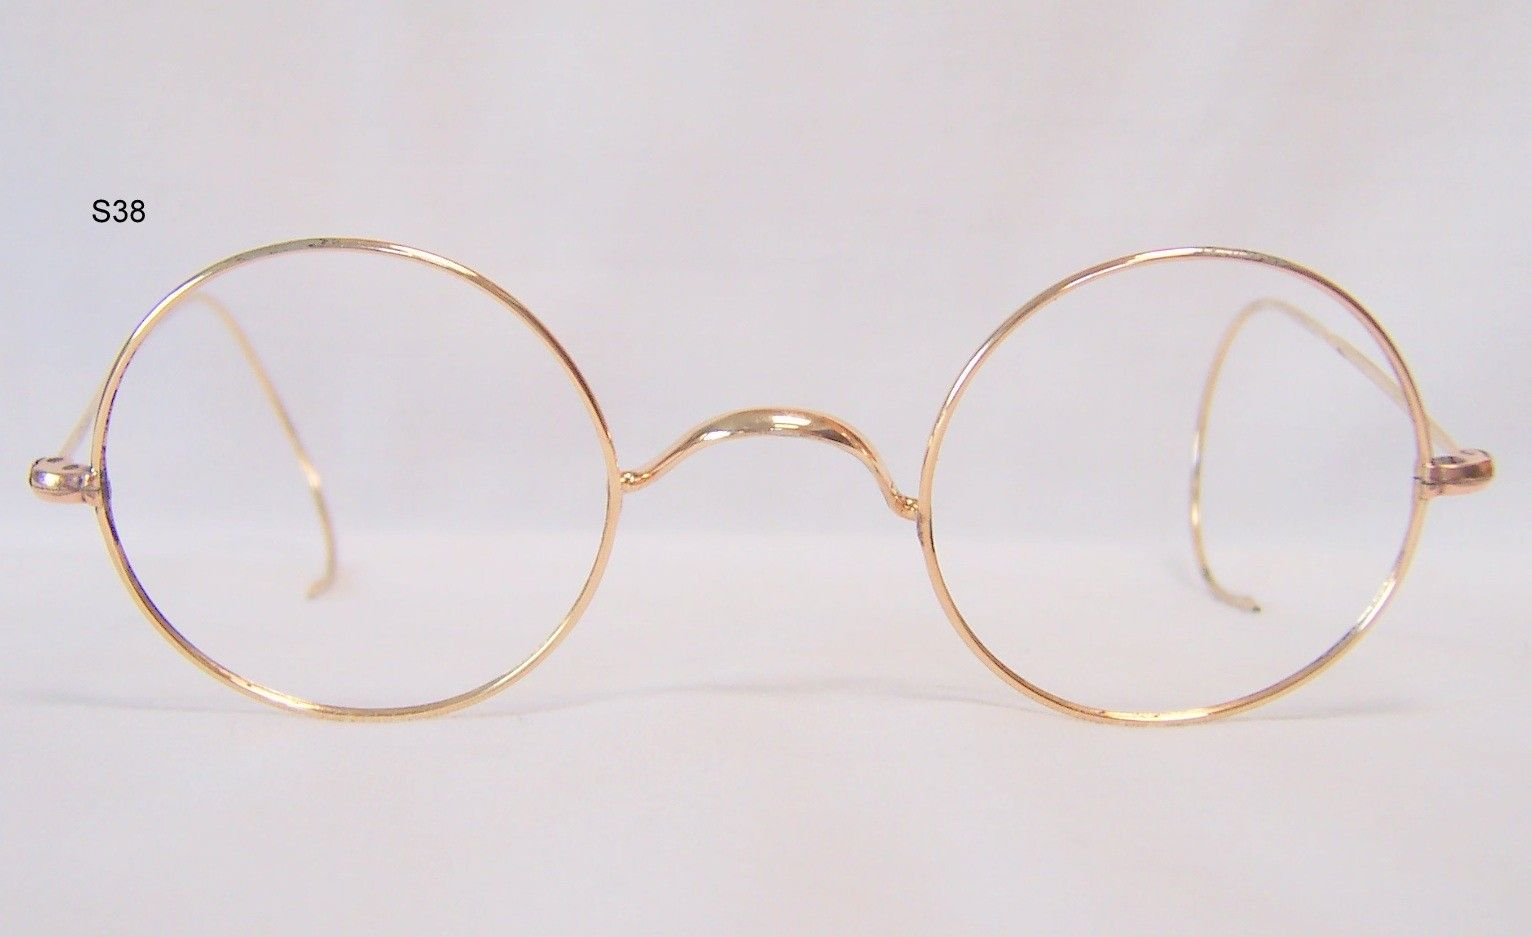 e4290a7b7 Gold filled 20th century round eye Windsor spectacles - Vintage Glasses -  Dead Men's Spex